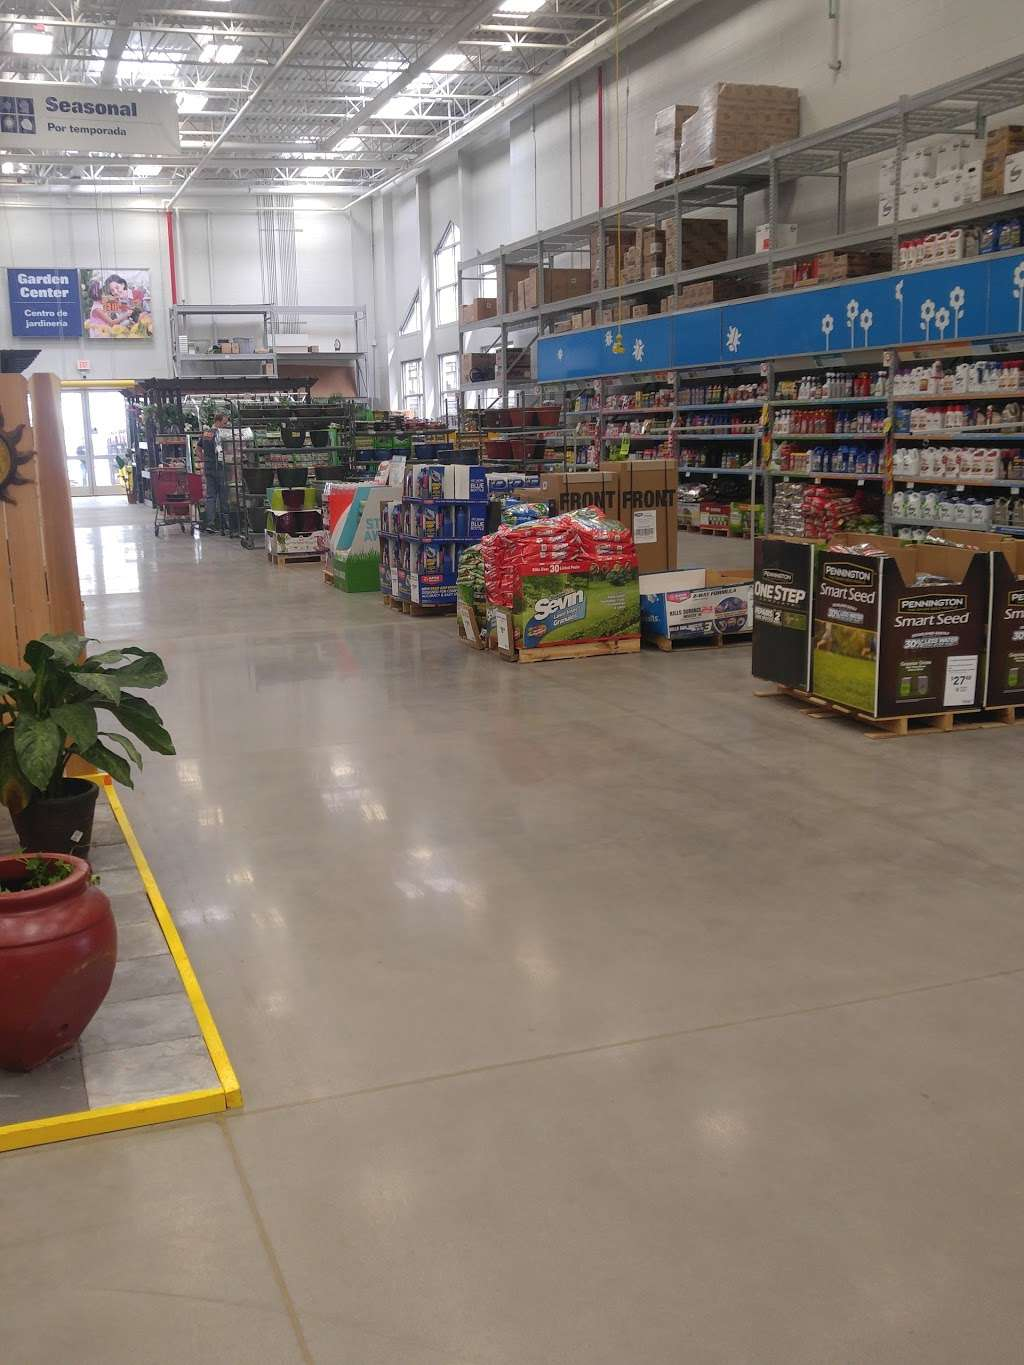 Lowes Home Improvement - hardware store    Photo 10 of 10   Address: 4980 E Bromley Ln, Brighton, CO 80601, USA   Phone: (303) 498-5000